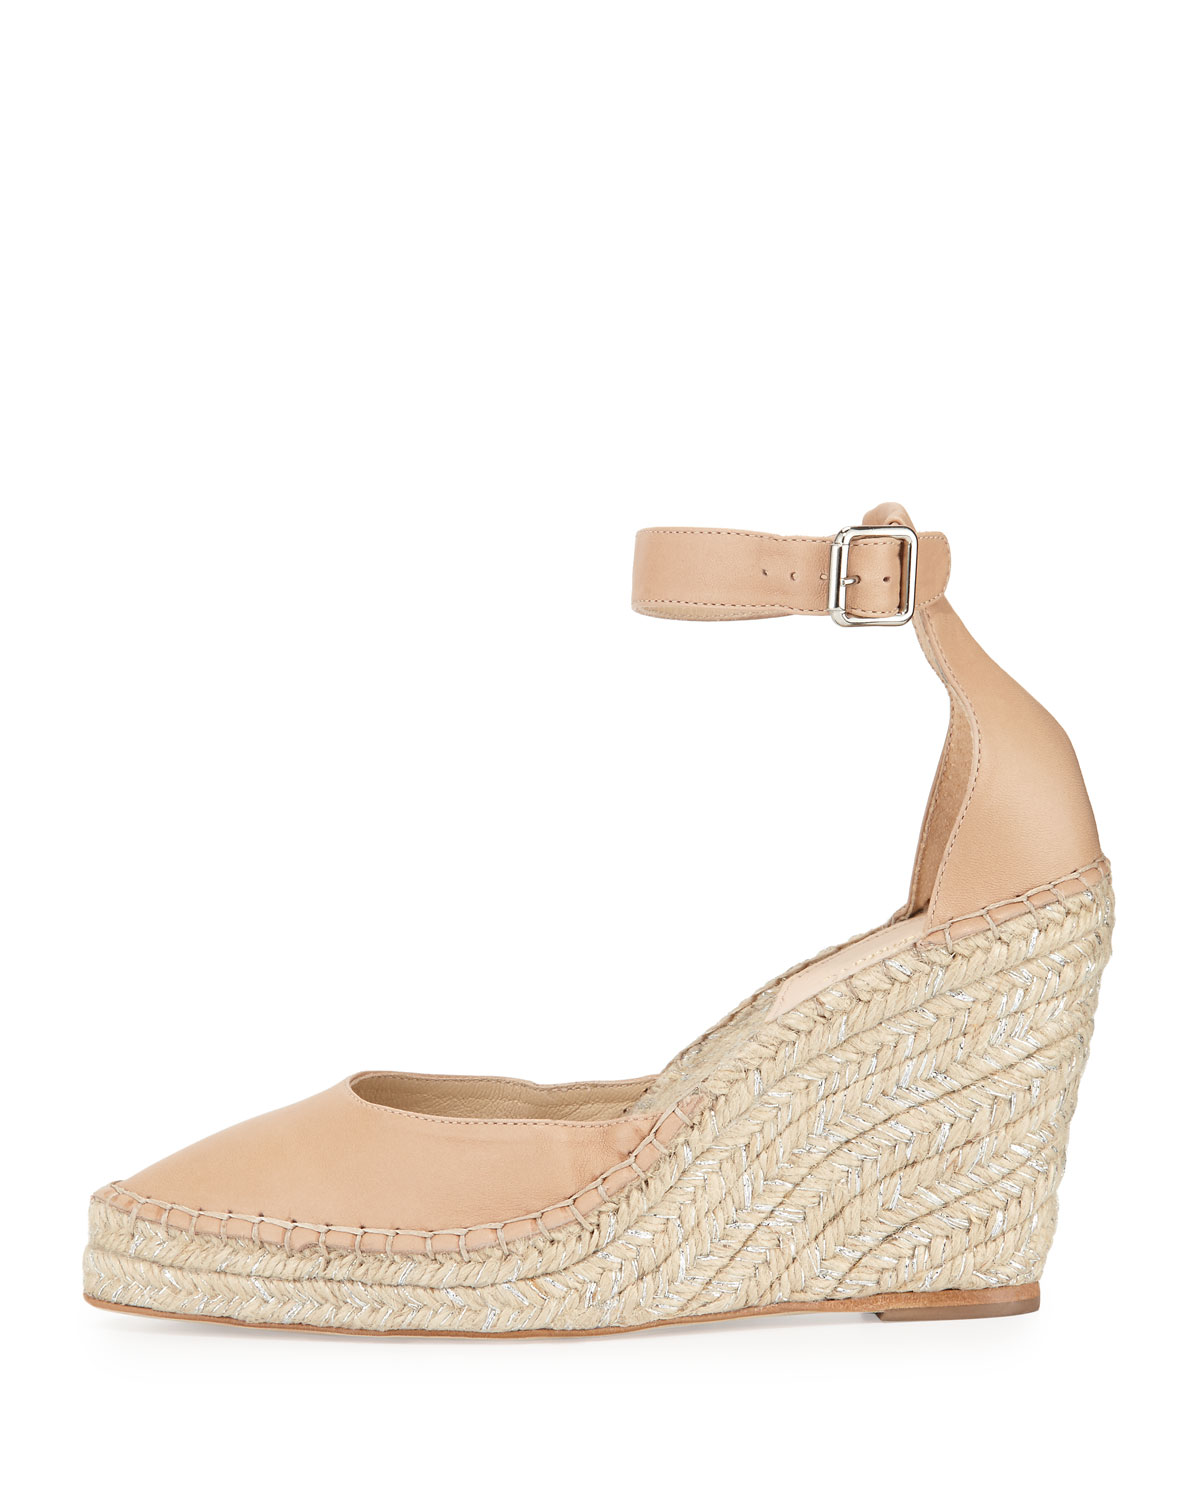 Loeffler Randall Leather Espadrille Pumps sale hot sale cheap with paypal sale high quality marketable cheap price clearance very cheap jvZUFqk